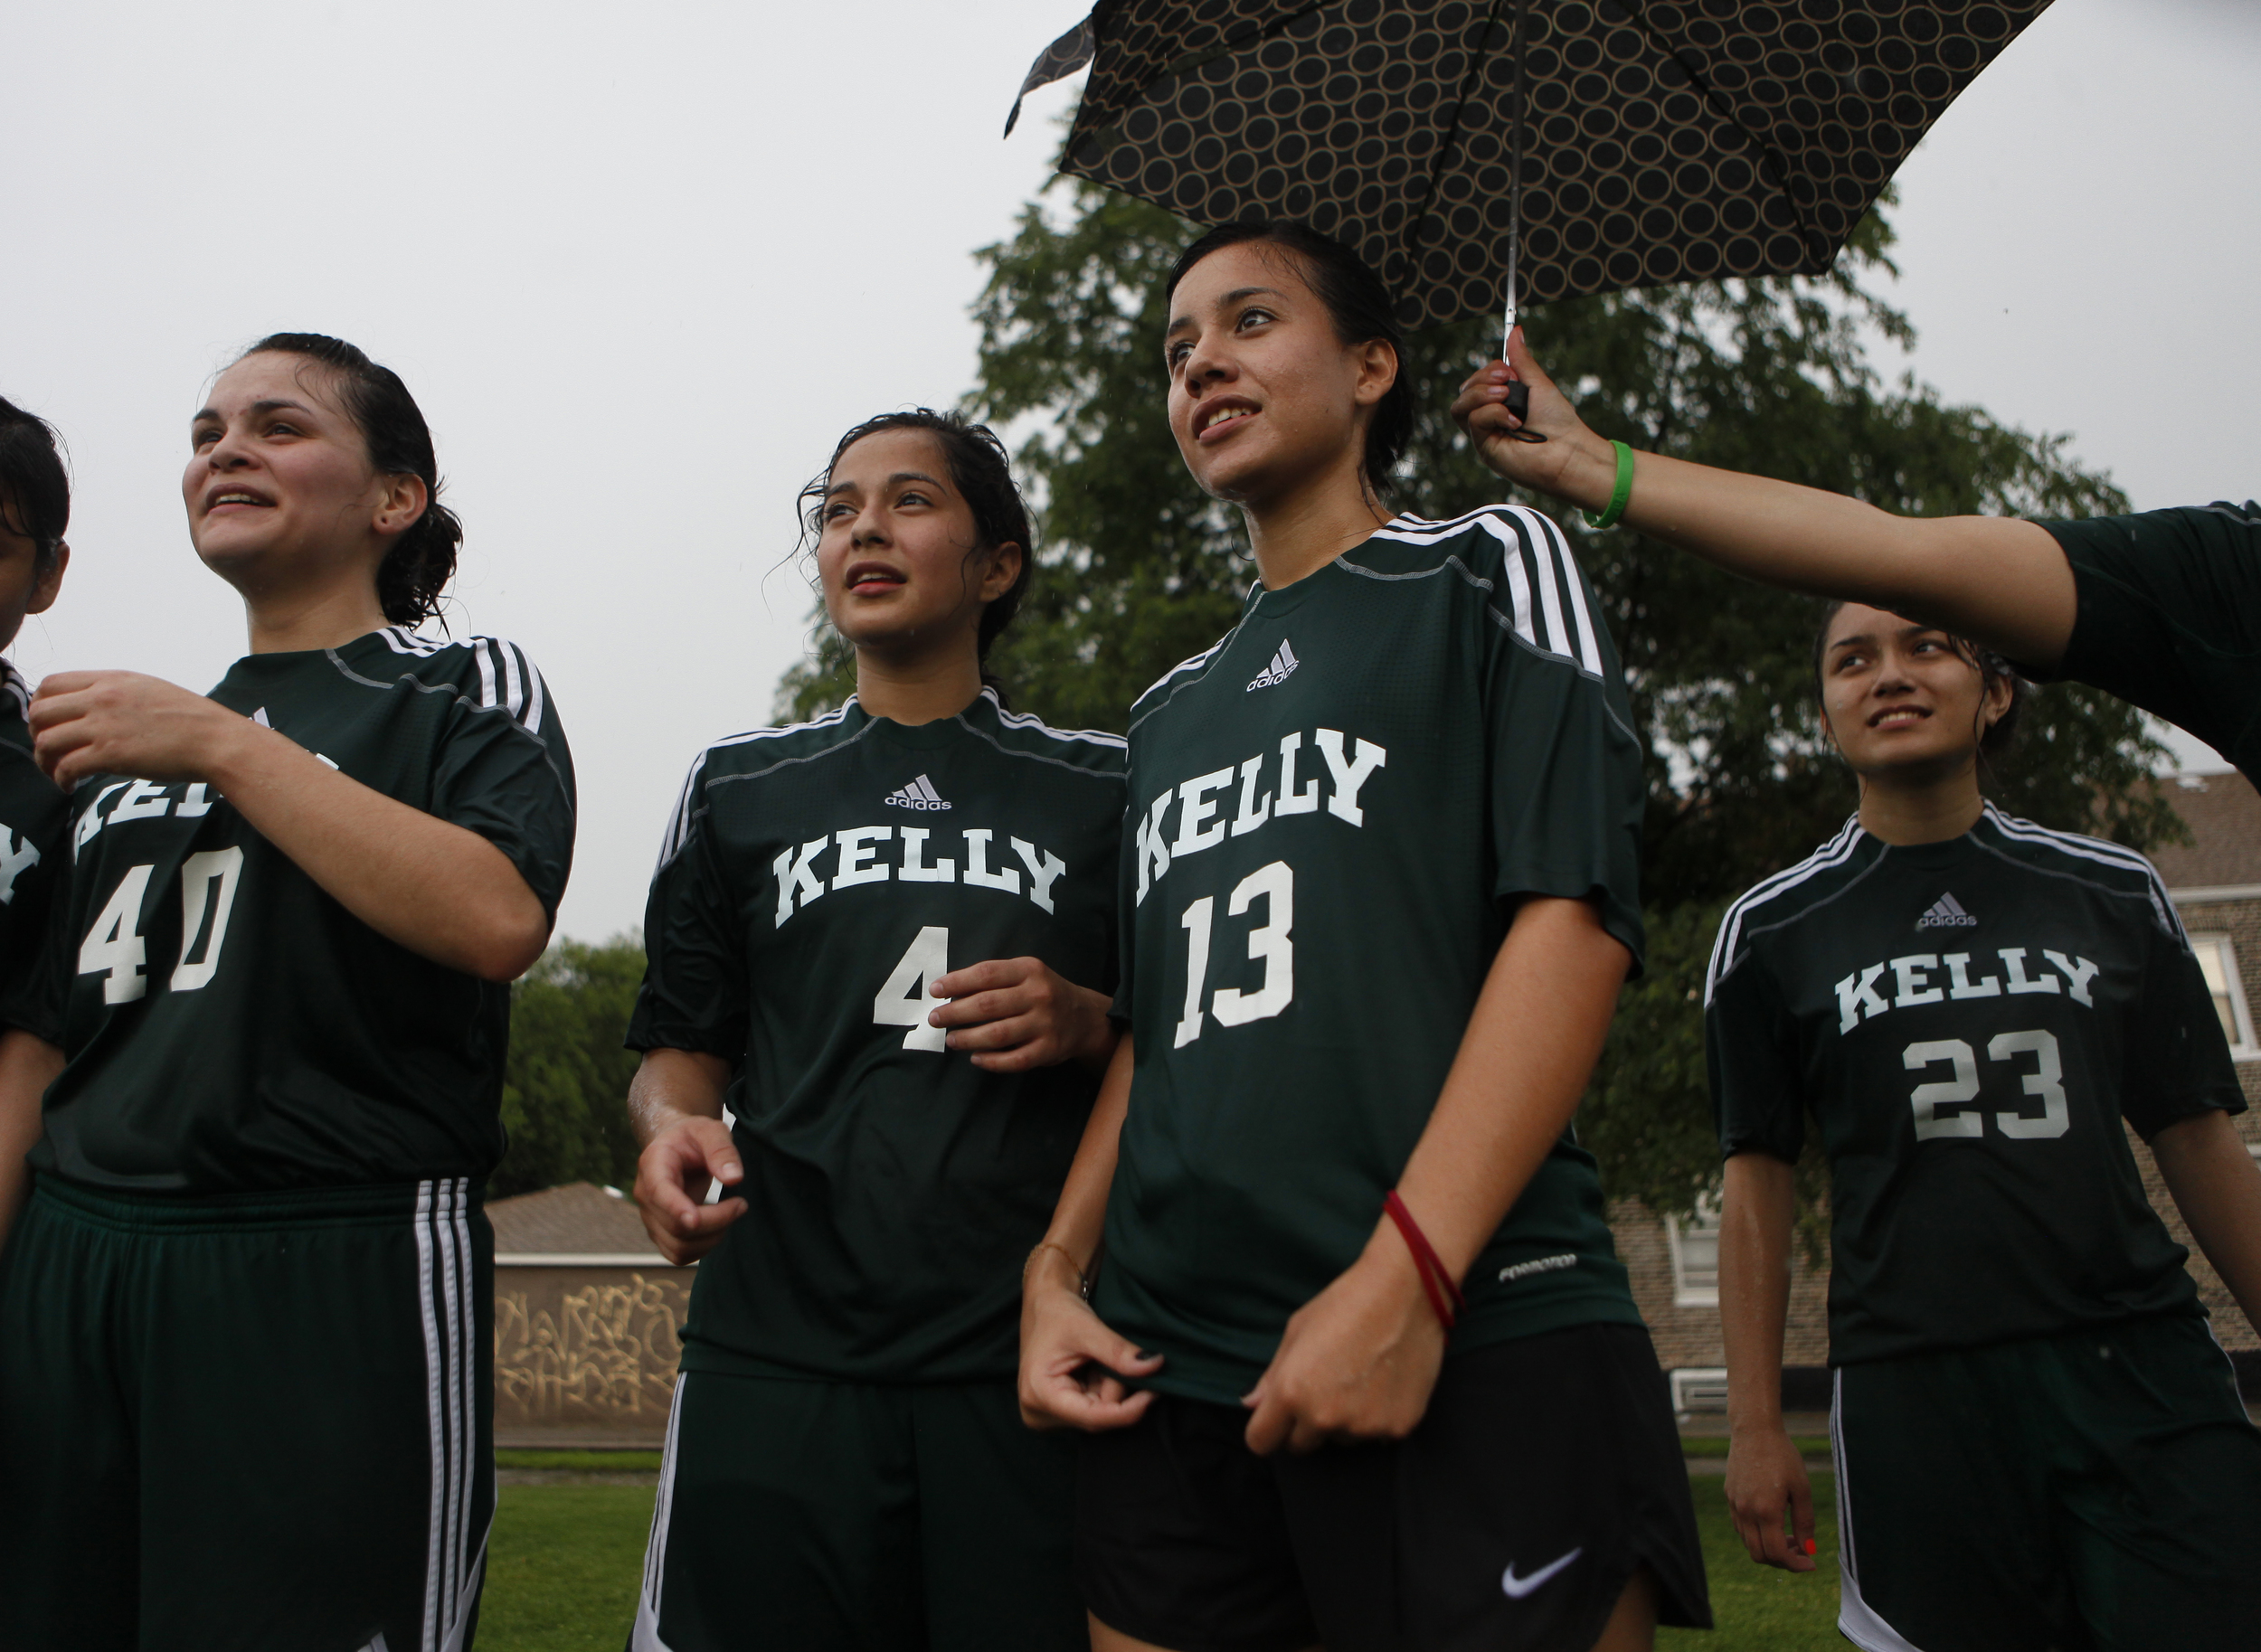 Cynthia Lucio, a junior, holds an umbrella out over Edith Garcia and Ana Flores' heads during practice in front of the Kelly High School in Chicago on Tuesday, June 11, 2013. The Kelly High School girls varsity soccer team is almost entirely first-generation Hispanic Americans. Many of the girls struggle to convince their parents to allow them to play soccer.